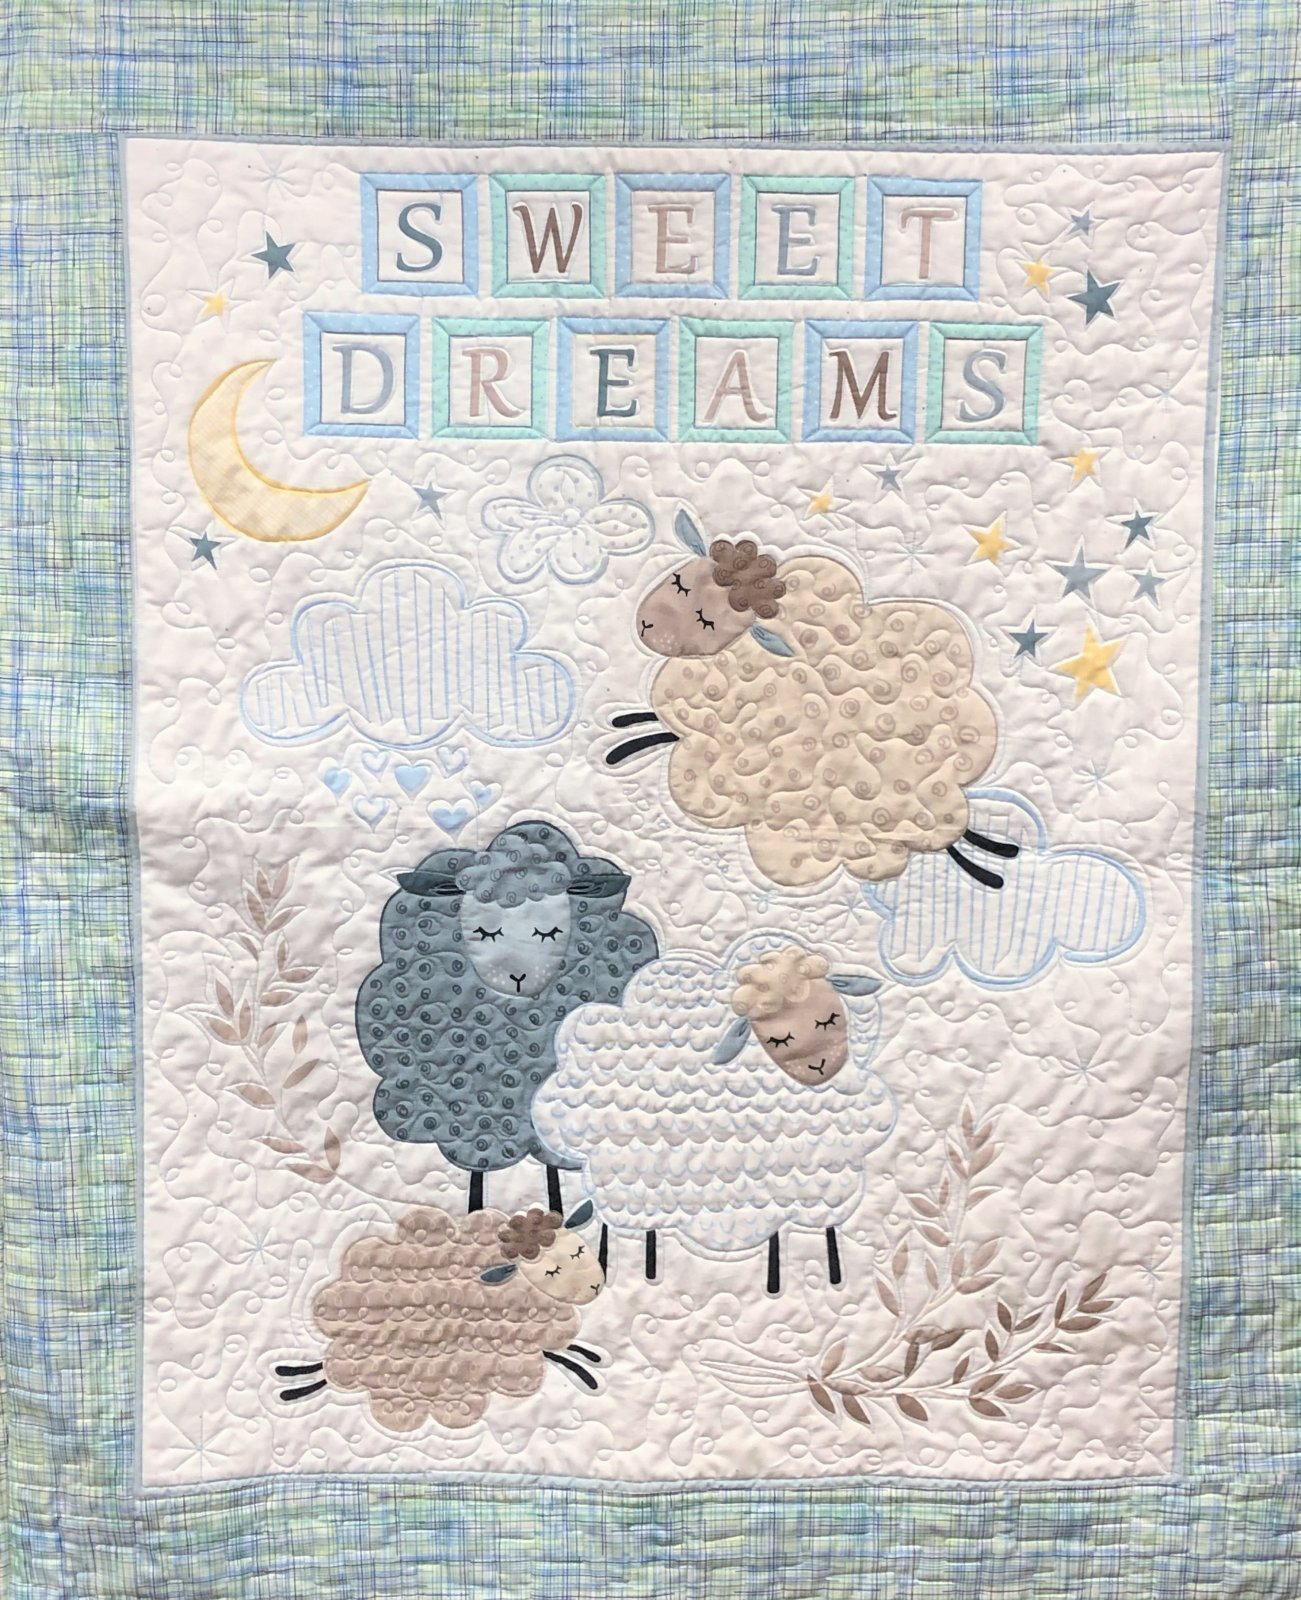 SWEET DREAMS KIT